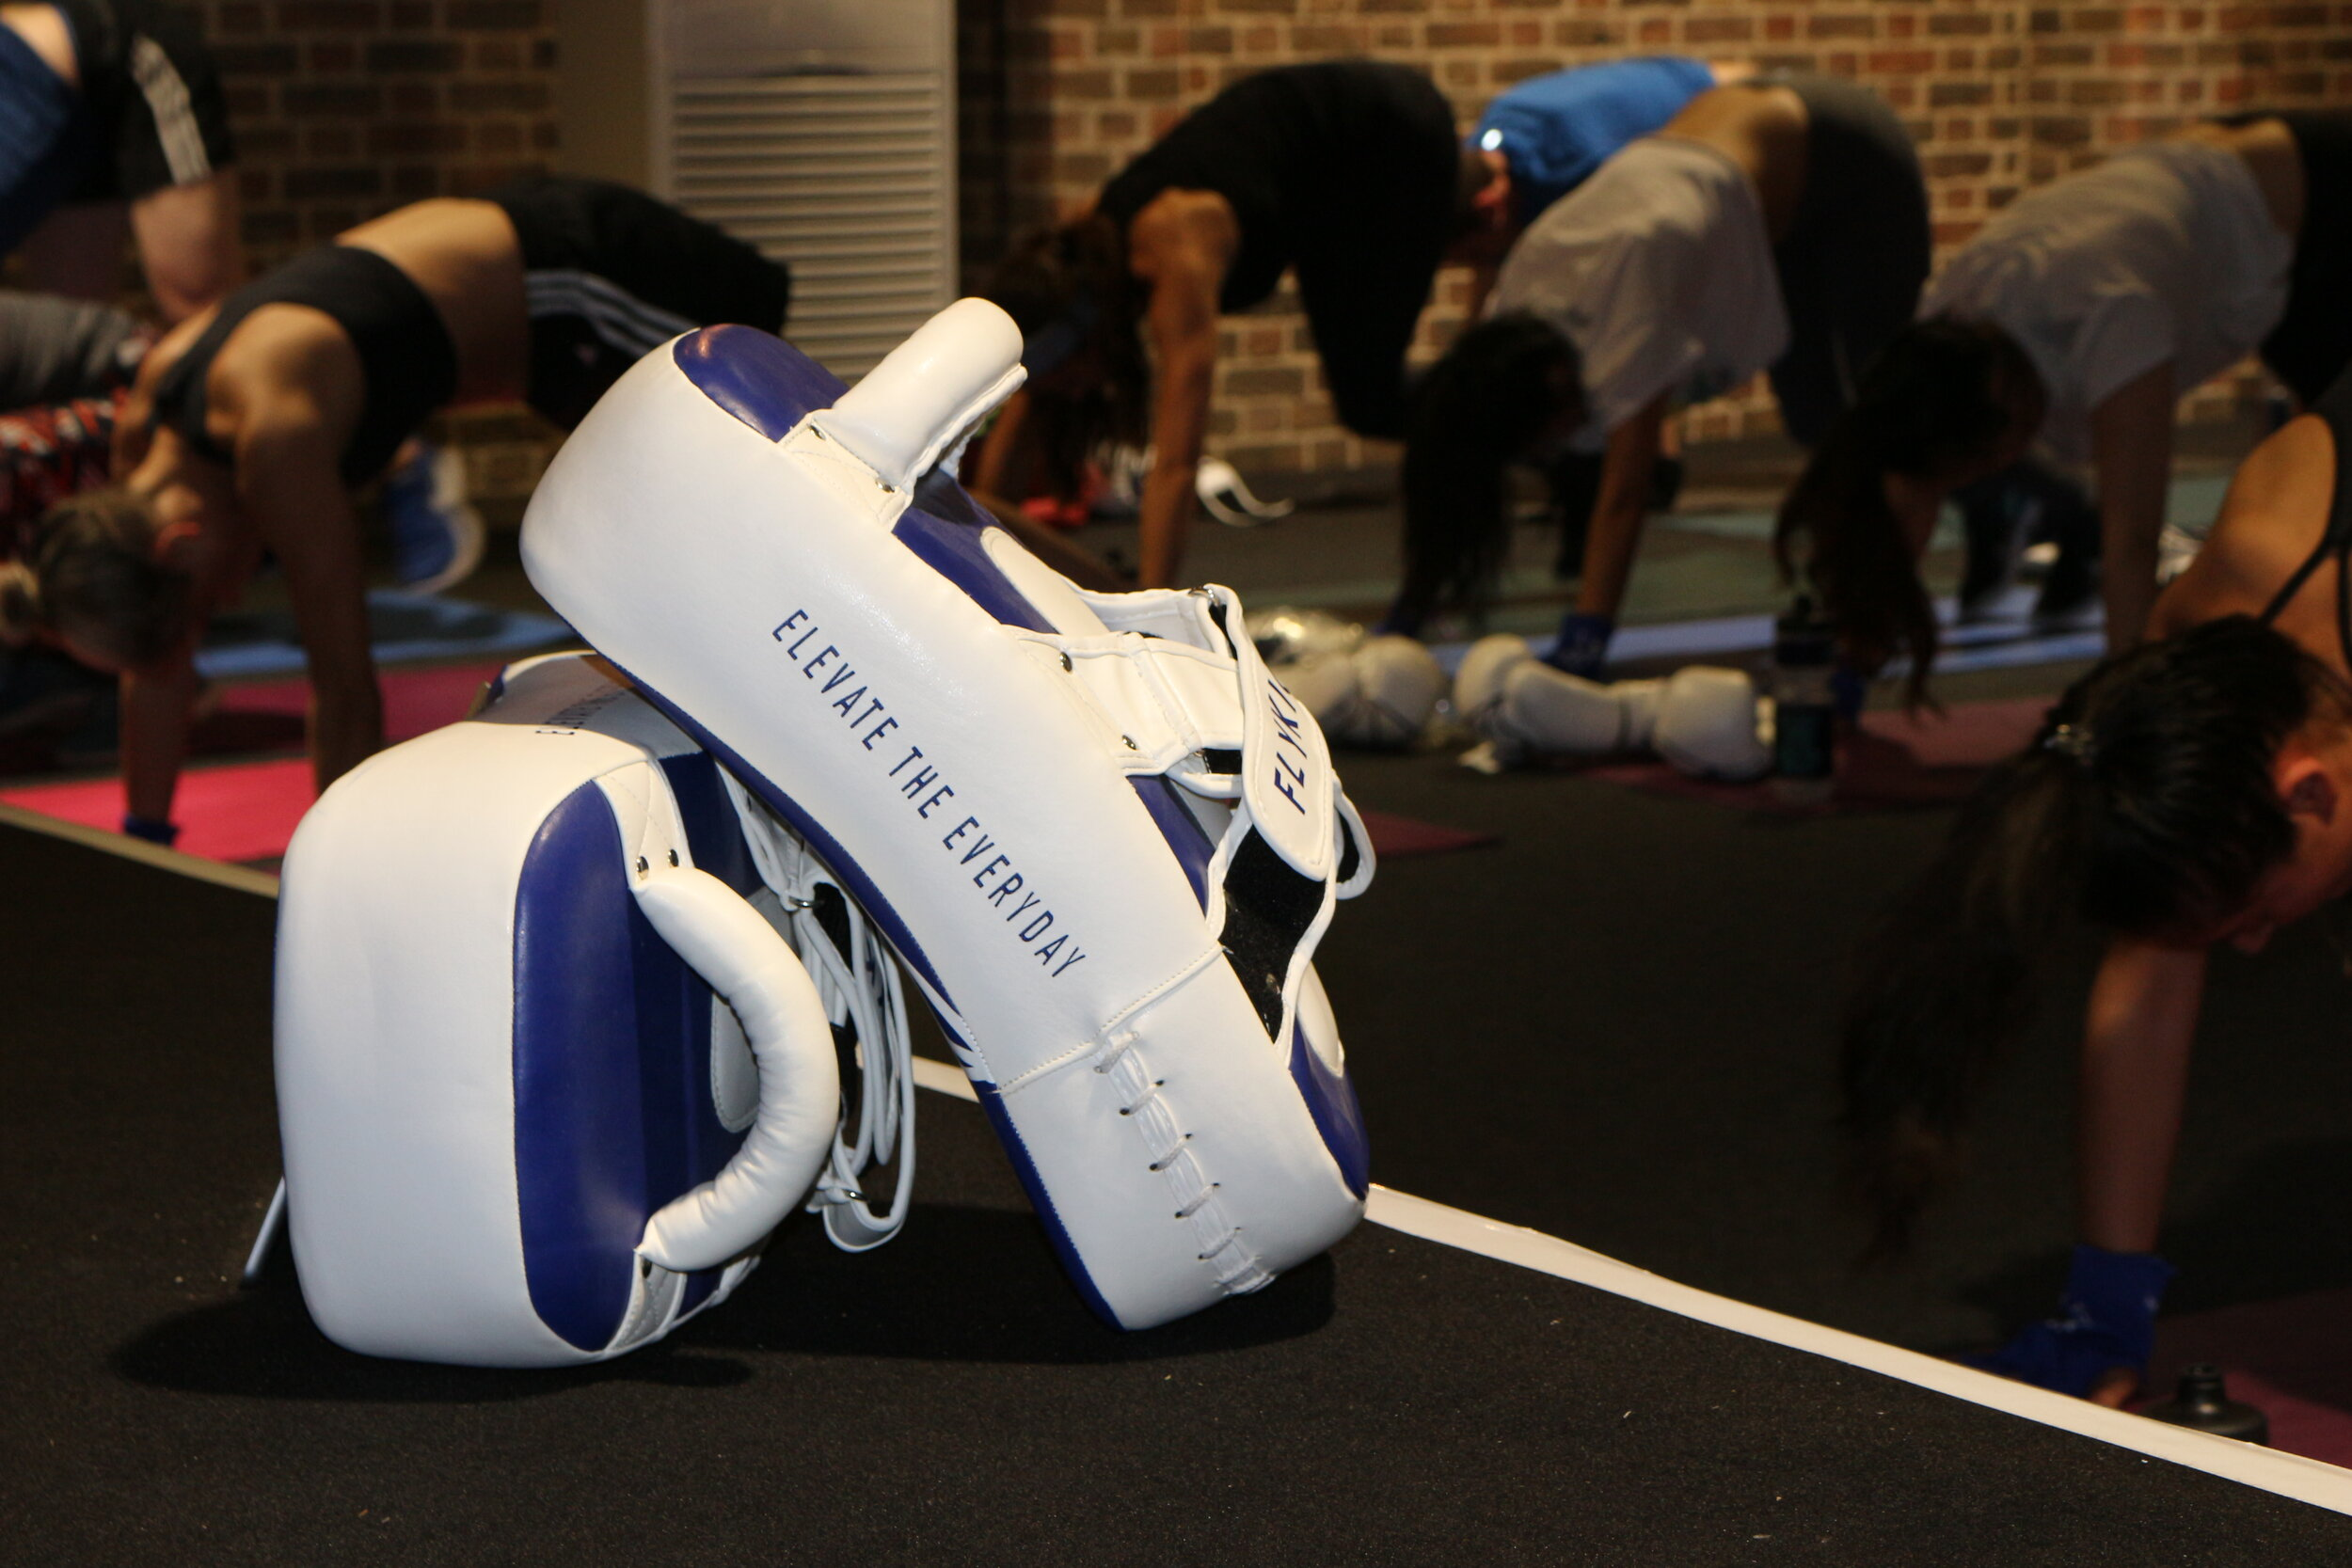 POP-UP CLASSES + WELLNESS EVENTS - We can run our Signature classes at your office or private venue for special events, wellbeing weeks and simply the days when your team is too busy to make it to the studio. We can also run workshops on topics such as nutrition, mental wellbeing, weight-training and more;Book a FLYKICK instructor to teach a HIIT and Padwork Pop-Up class for up to 30 guests - we'll kit you all out with our rental gloves and wraps